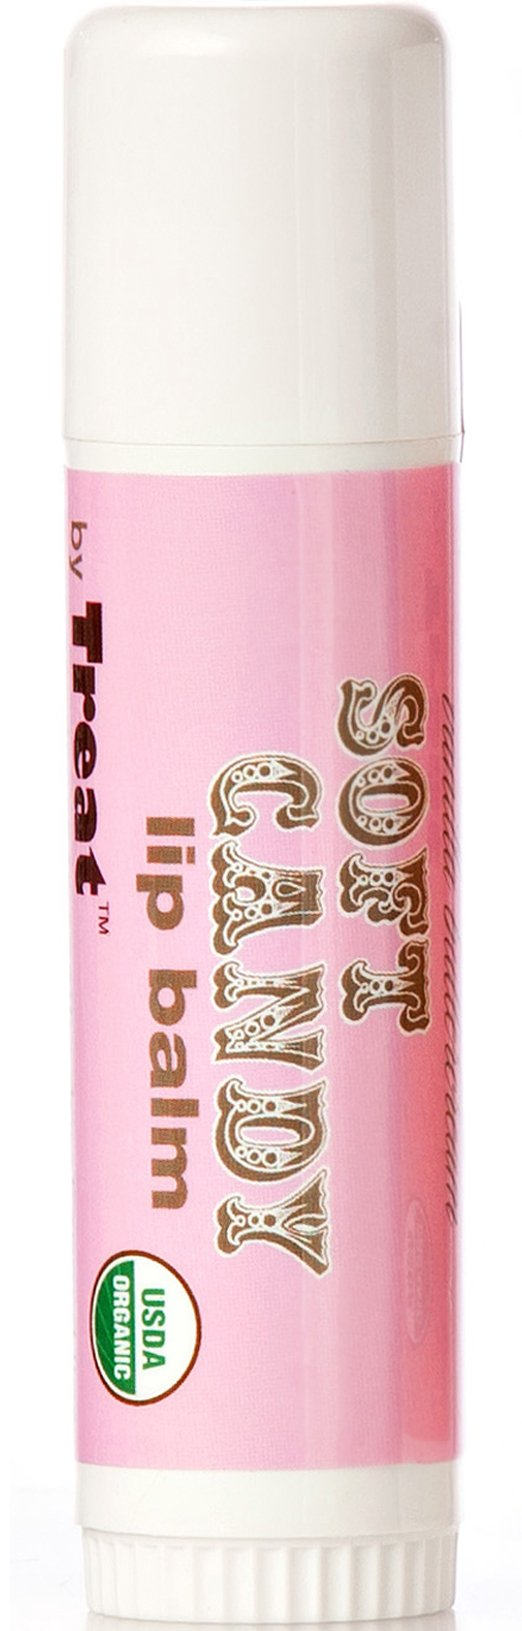 TREAT JUMBO Organic Lip Balm, Soft Candy Vanilla Buttercream, Cruelty Free .50 Ounces